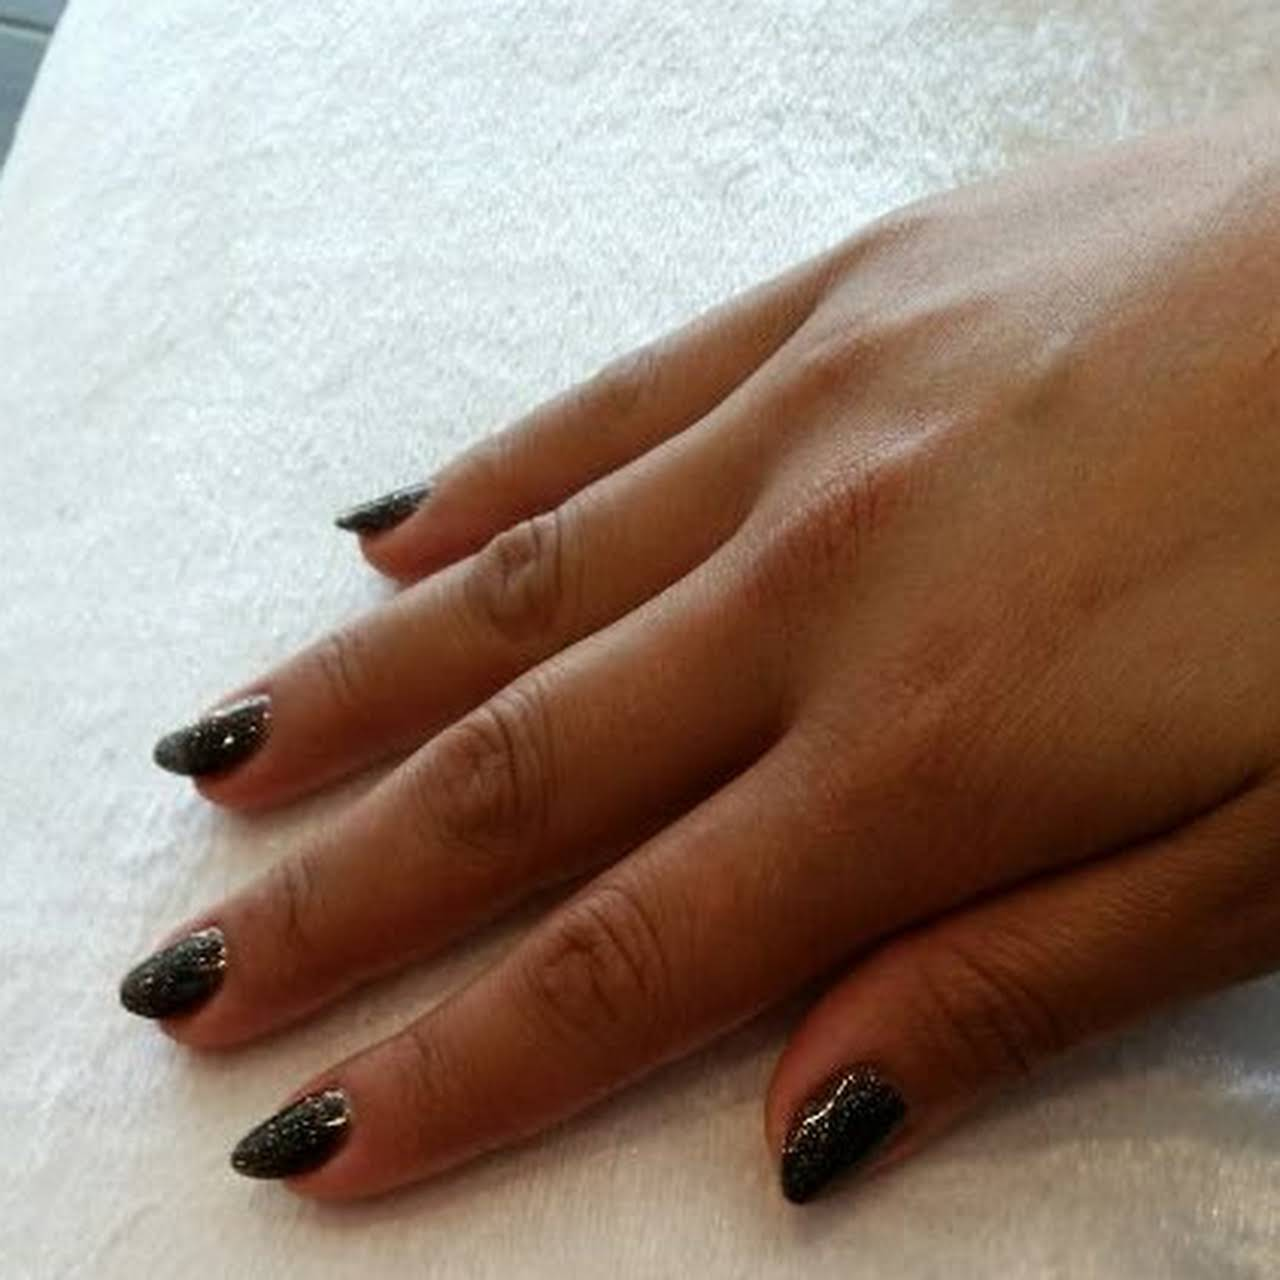 Kaylee Organic Nails & Spa - Nail Salon in Burbank